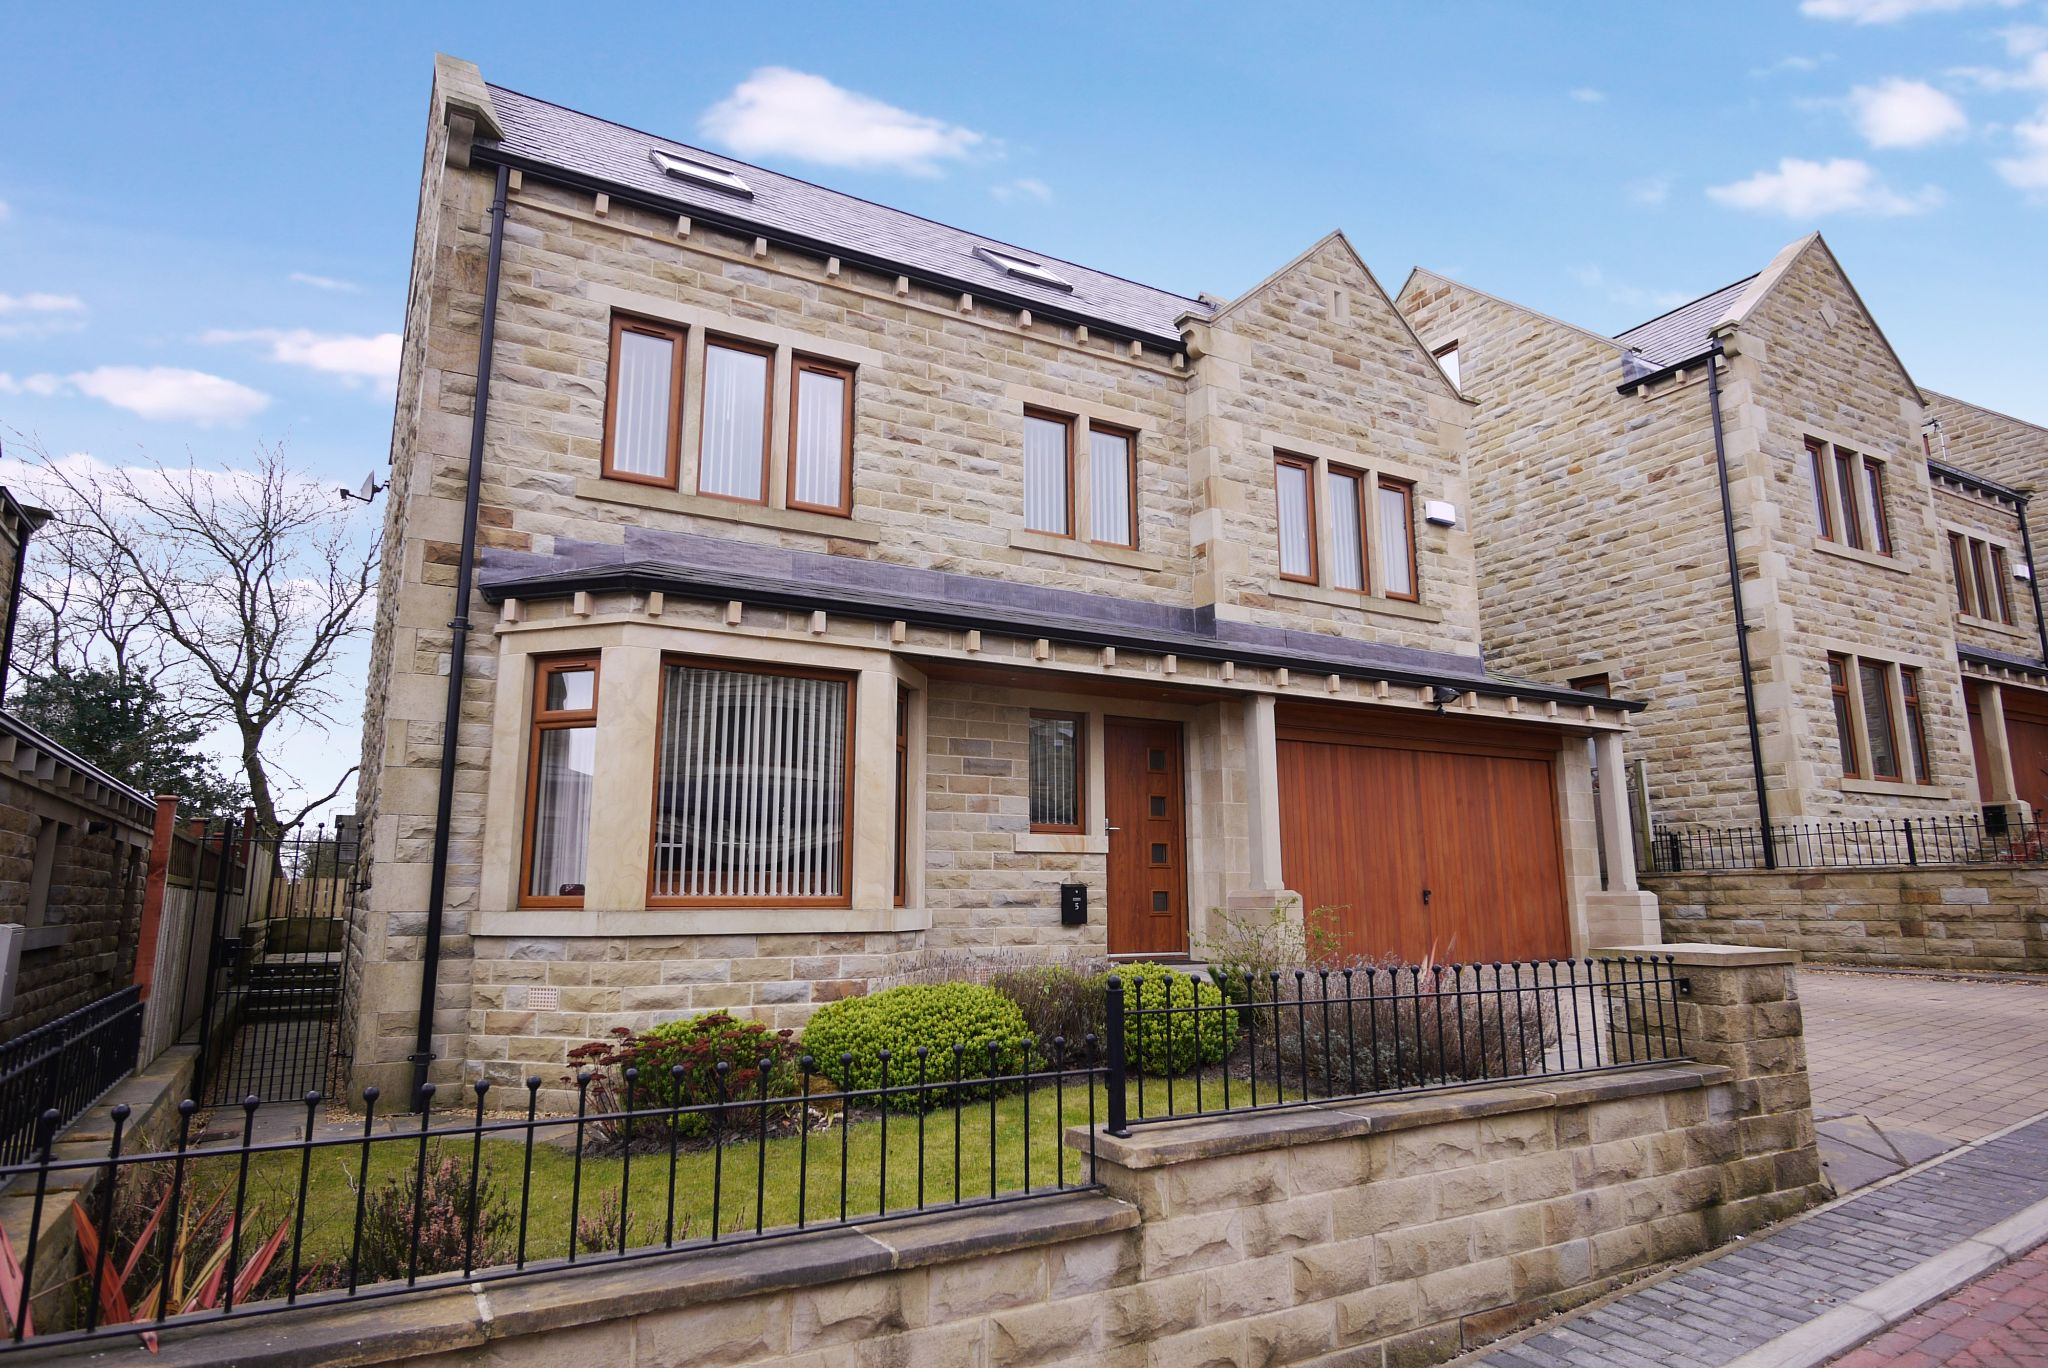 5 bedroom detached house SSTC in Halifax - Main.